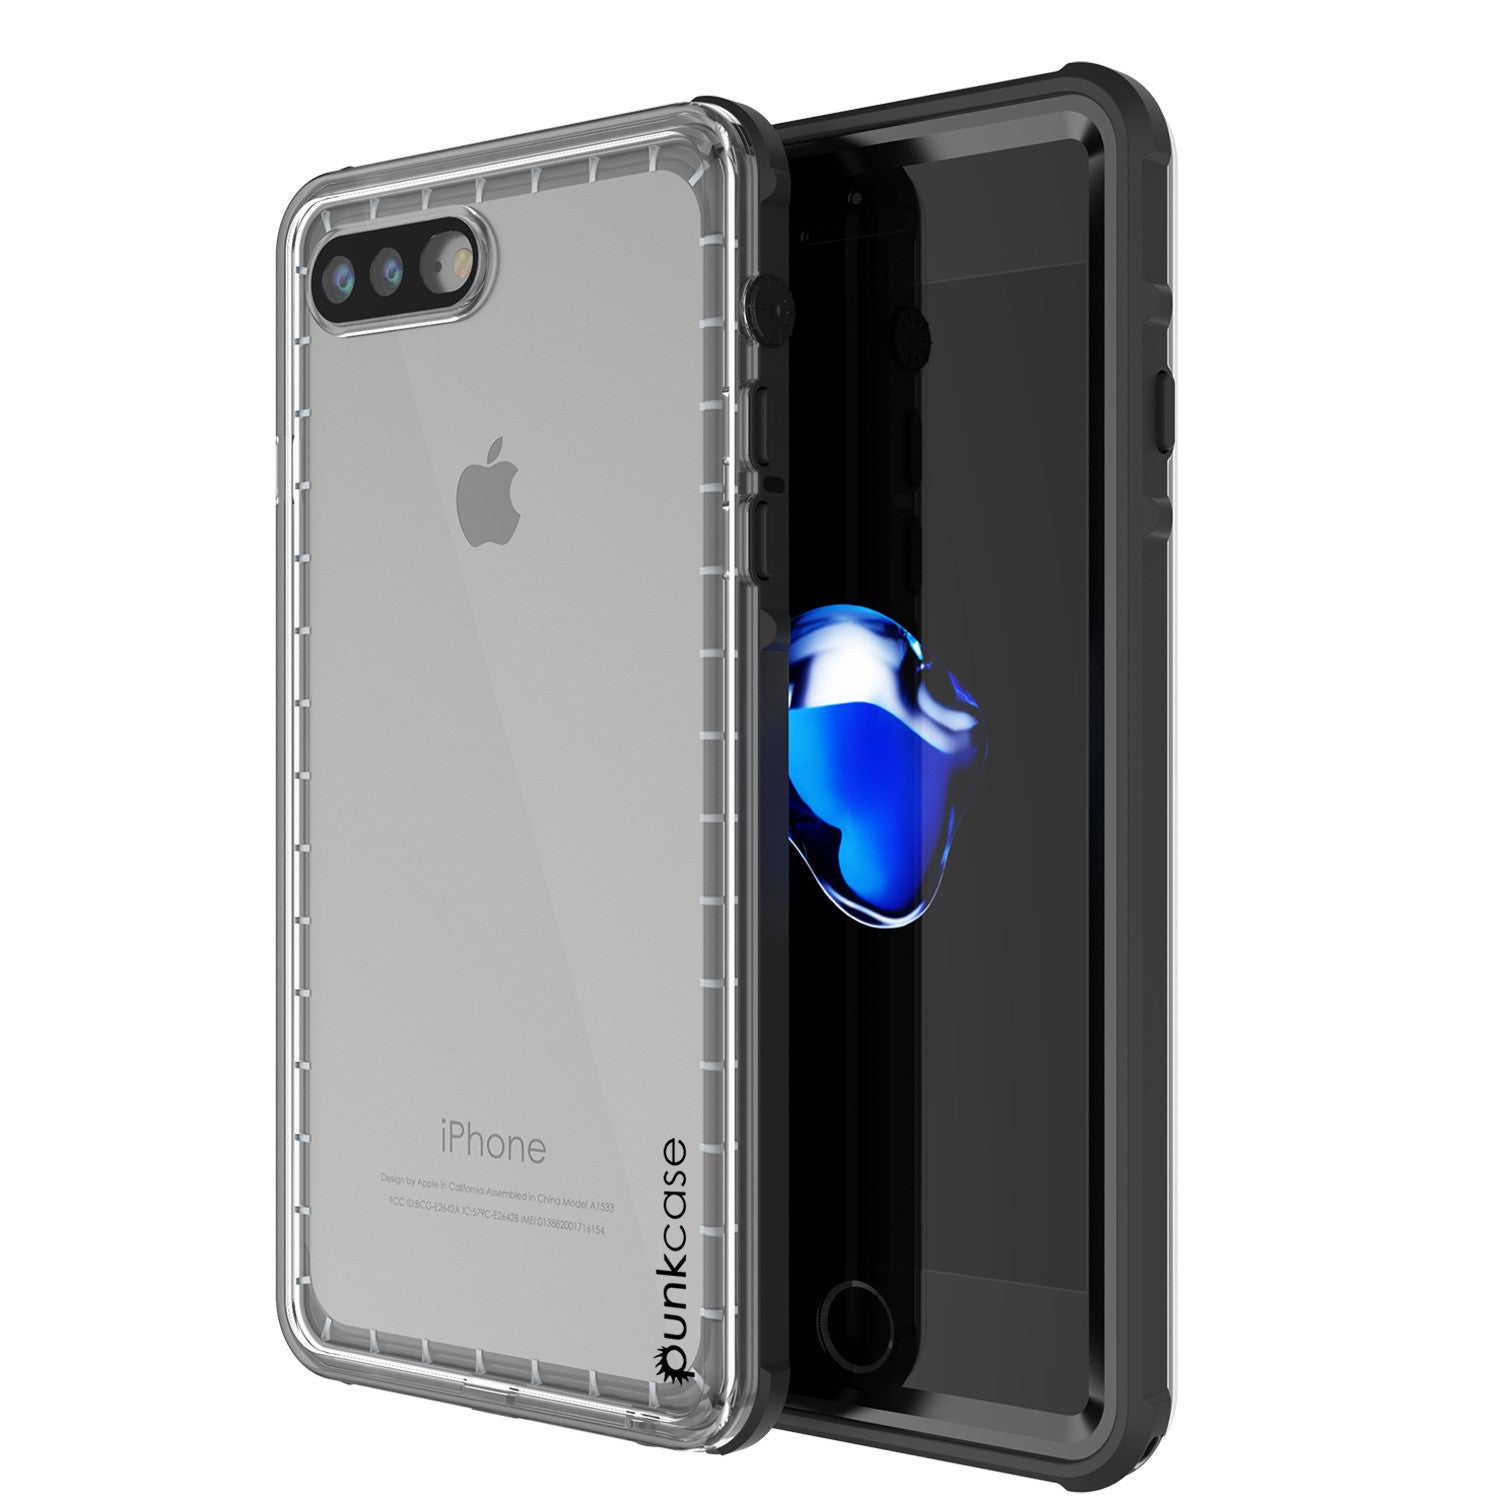 iPhone 7+ Plus Waterproof Case, PUNKcase CRYSTAL Black W/ Attached Screen Protector  | Warranty